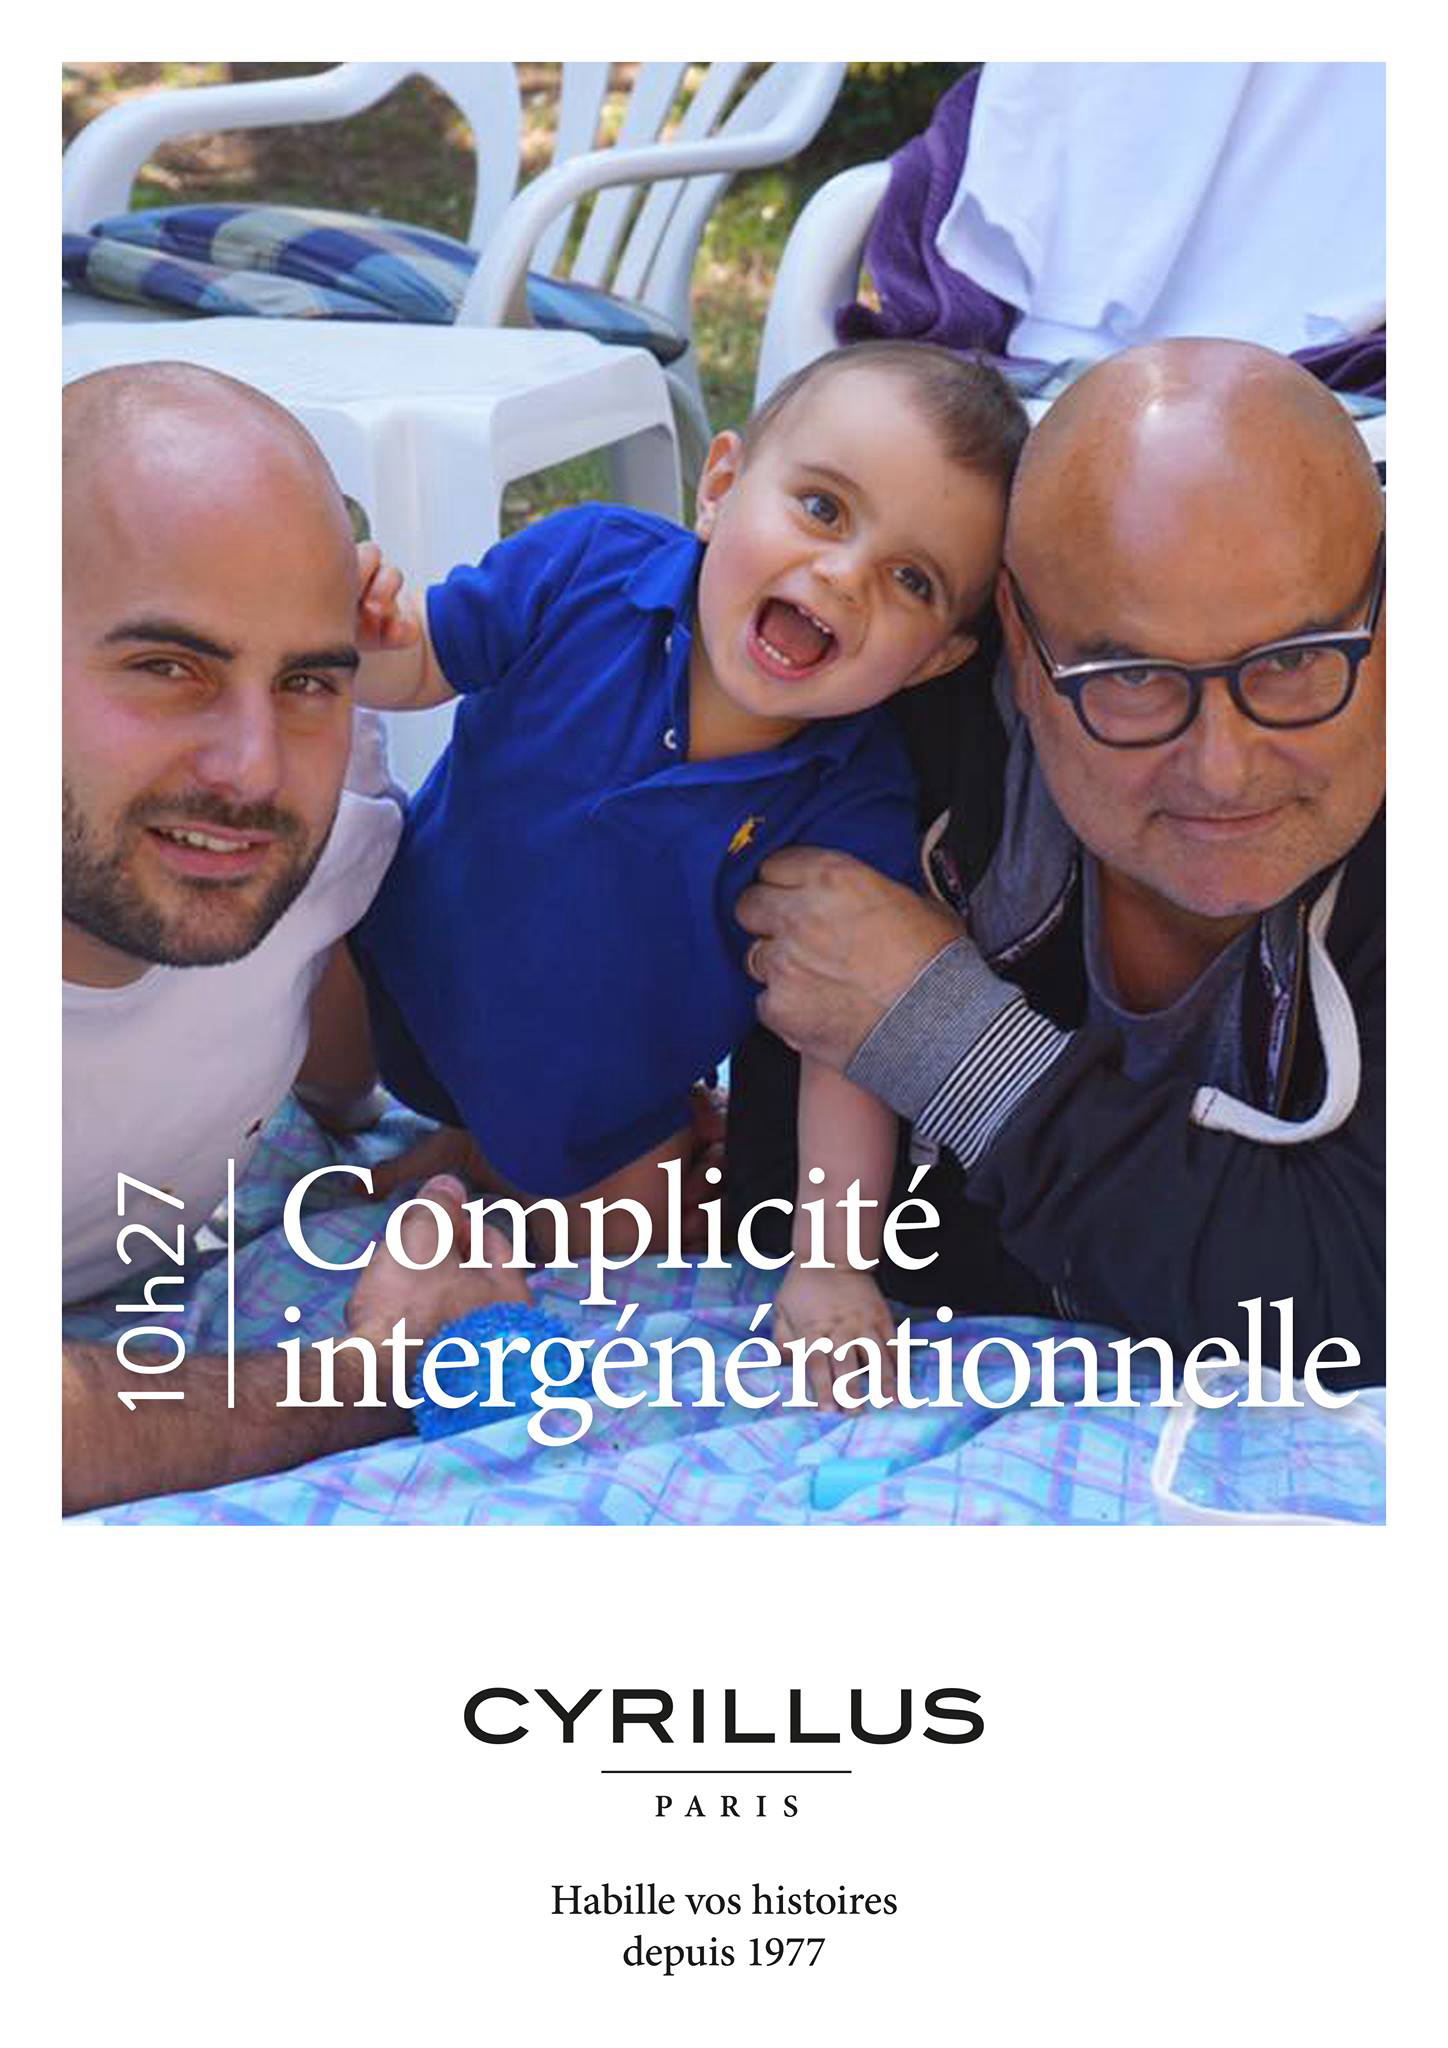 Cyrillus - intergénérationel